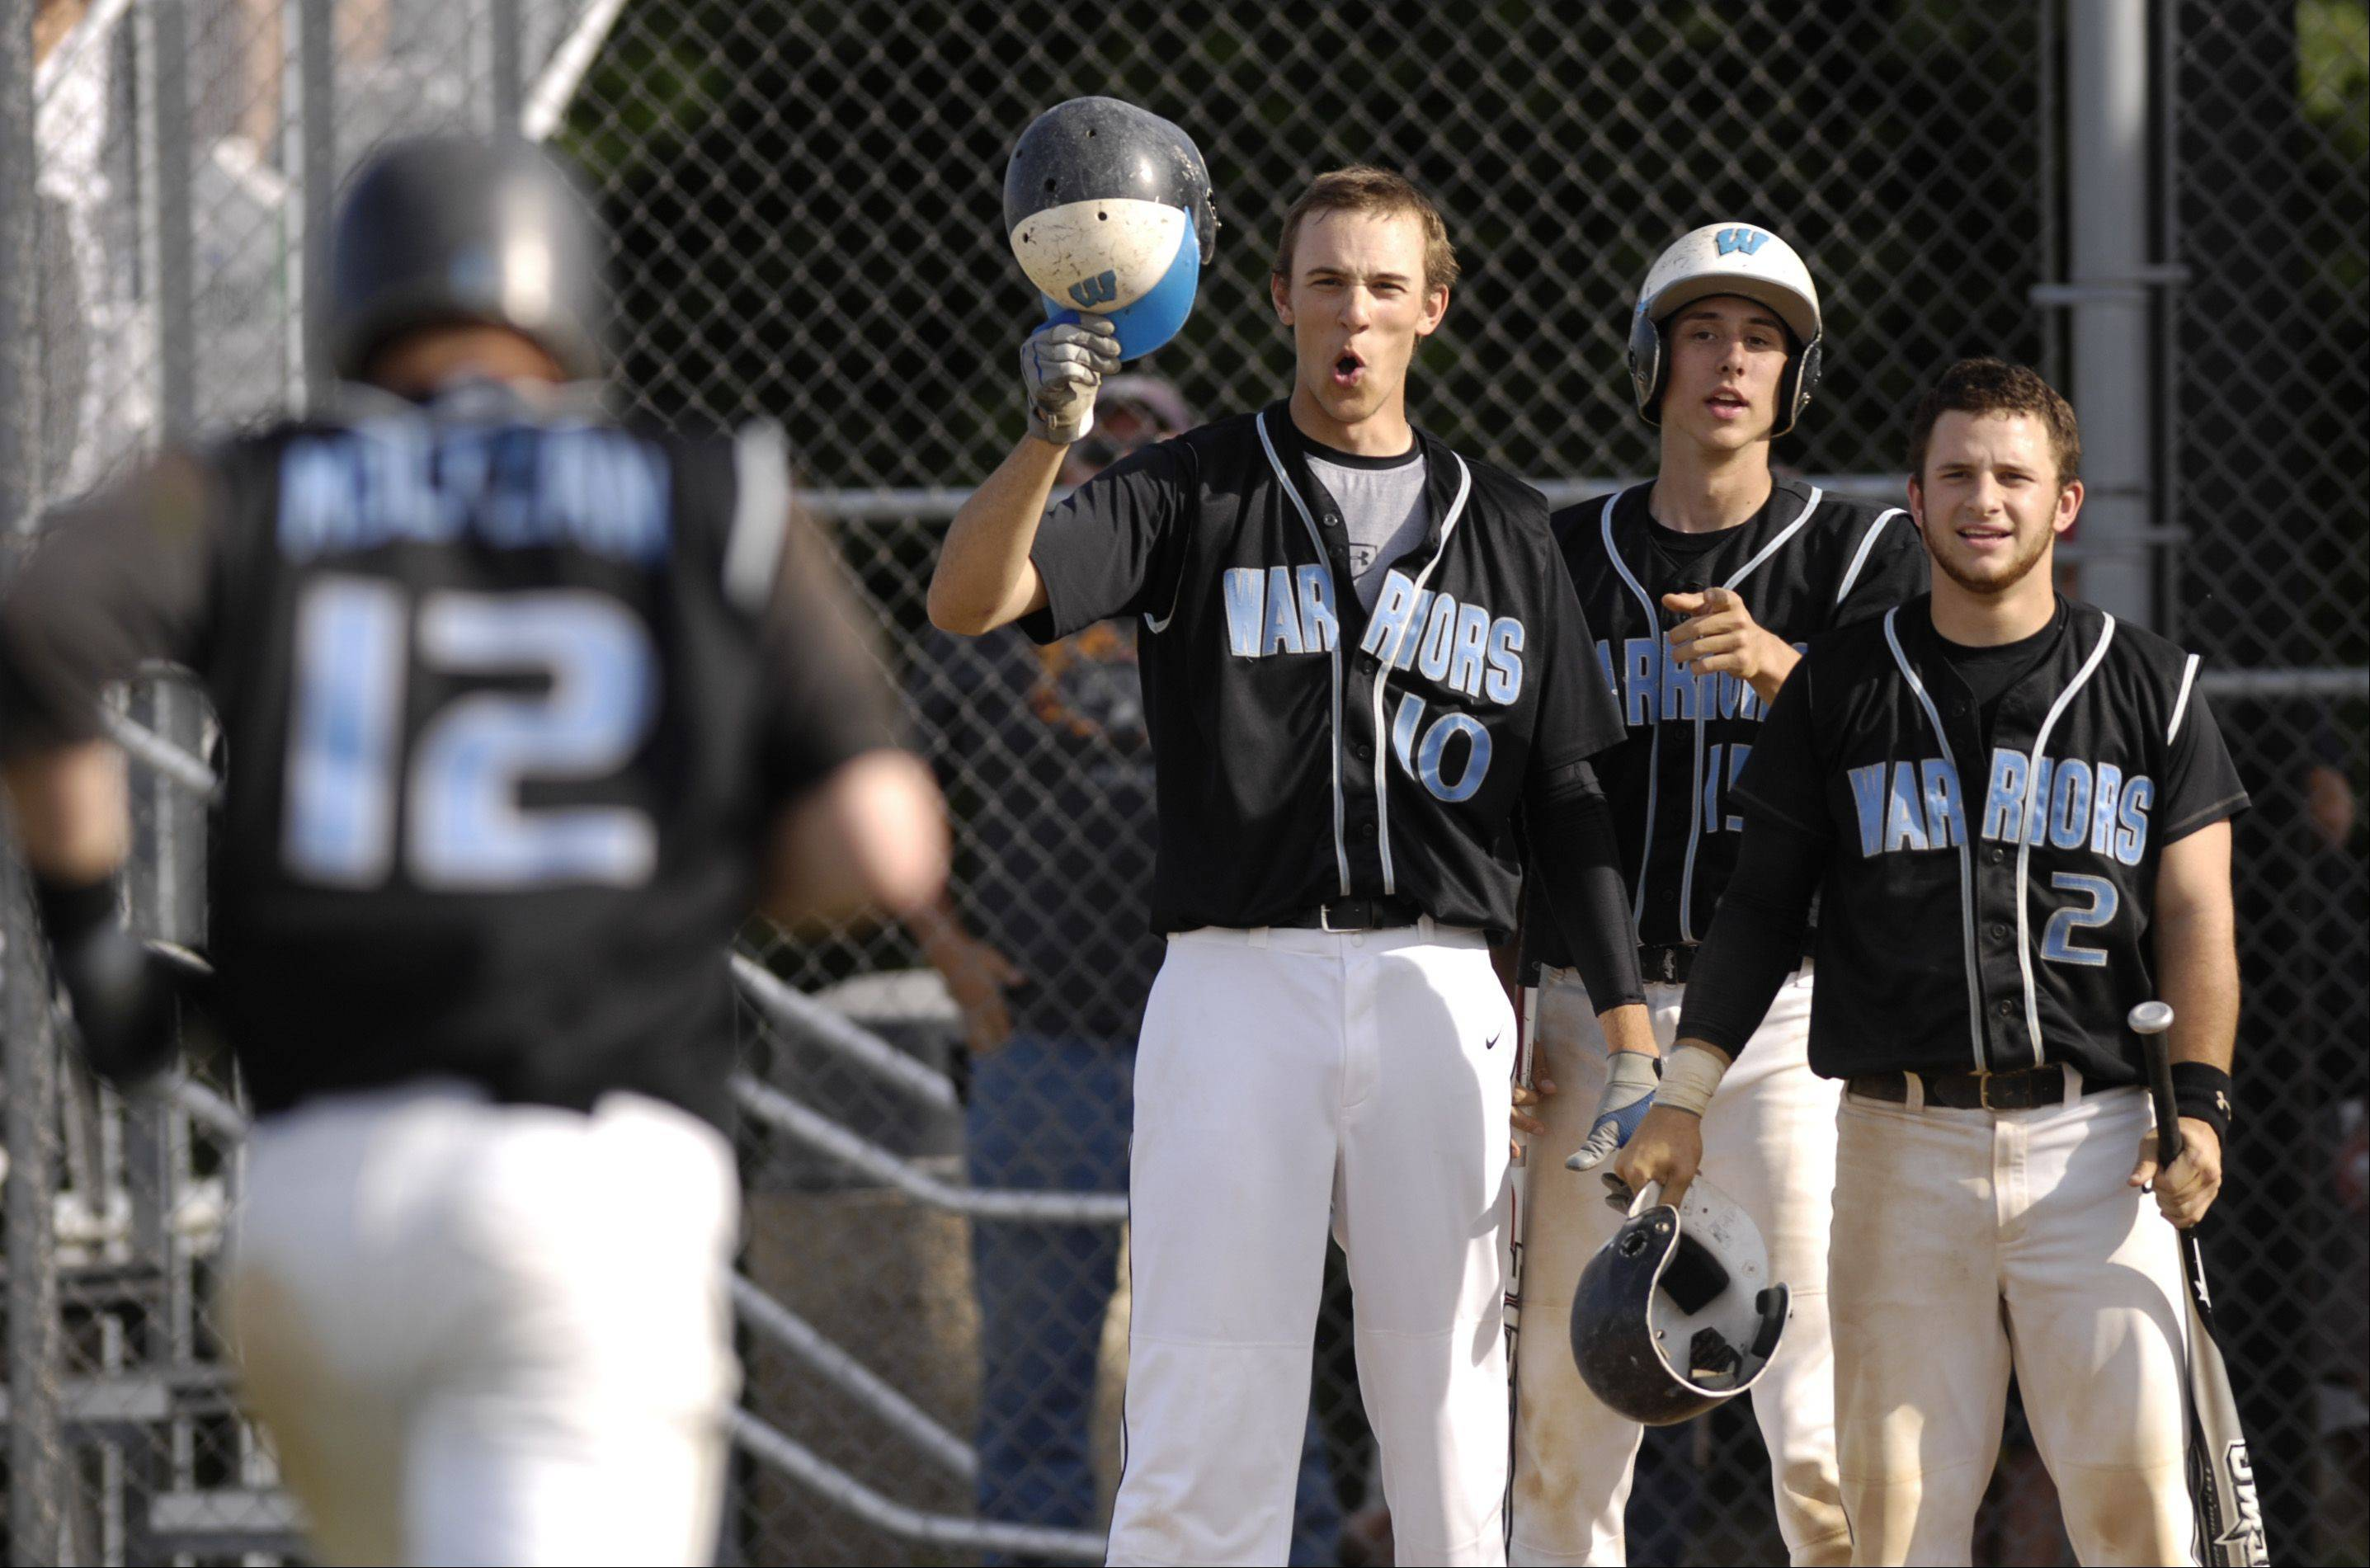 Willowbrook's Cal Moltzan is congratulated by teammates Mike Rothmund, Tom Van Kooten, and Kurt Gitchell following his home run against Wheaton North in Wednesday's regional baseball action in Wheaton.